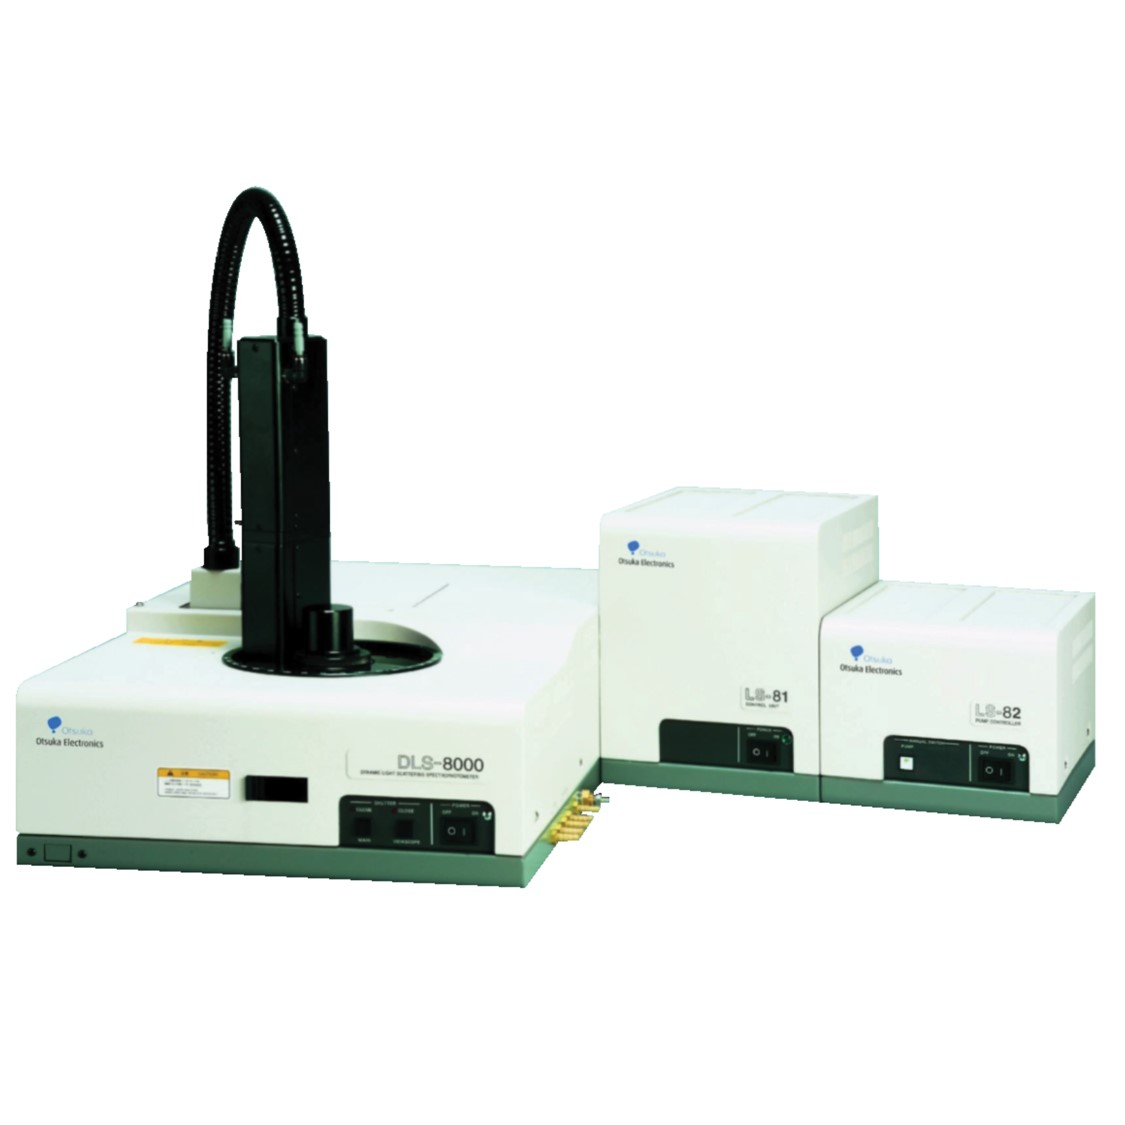 Product image: DLS-8000 series